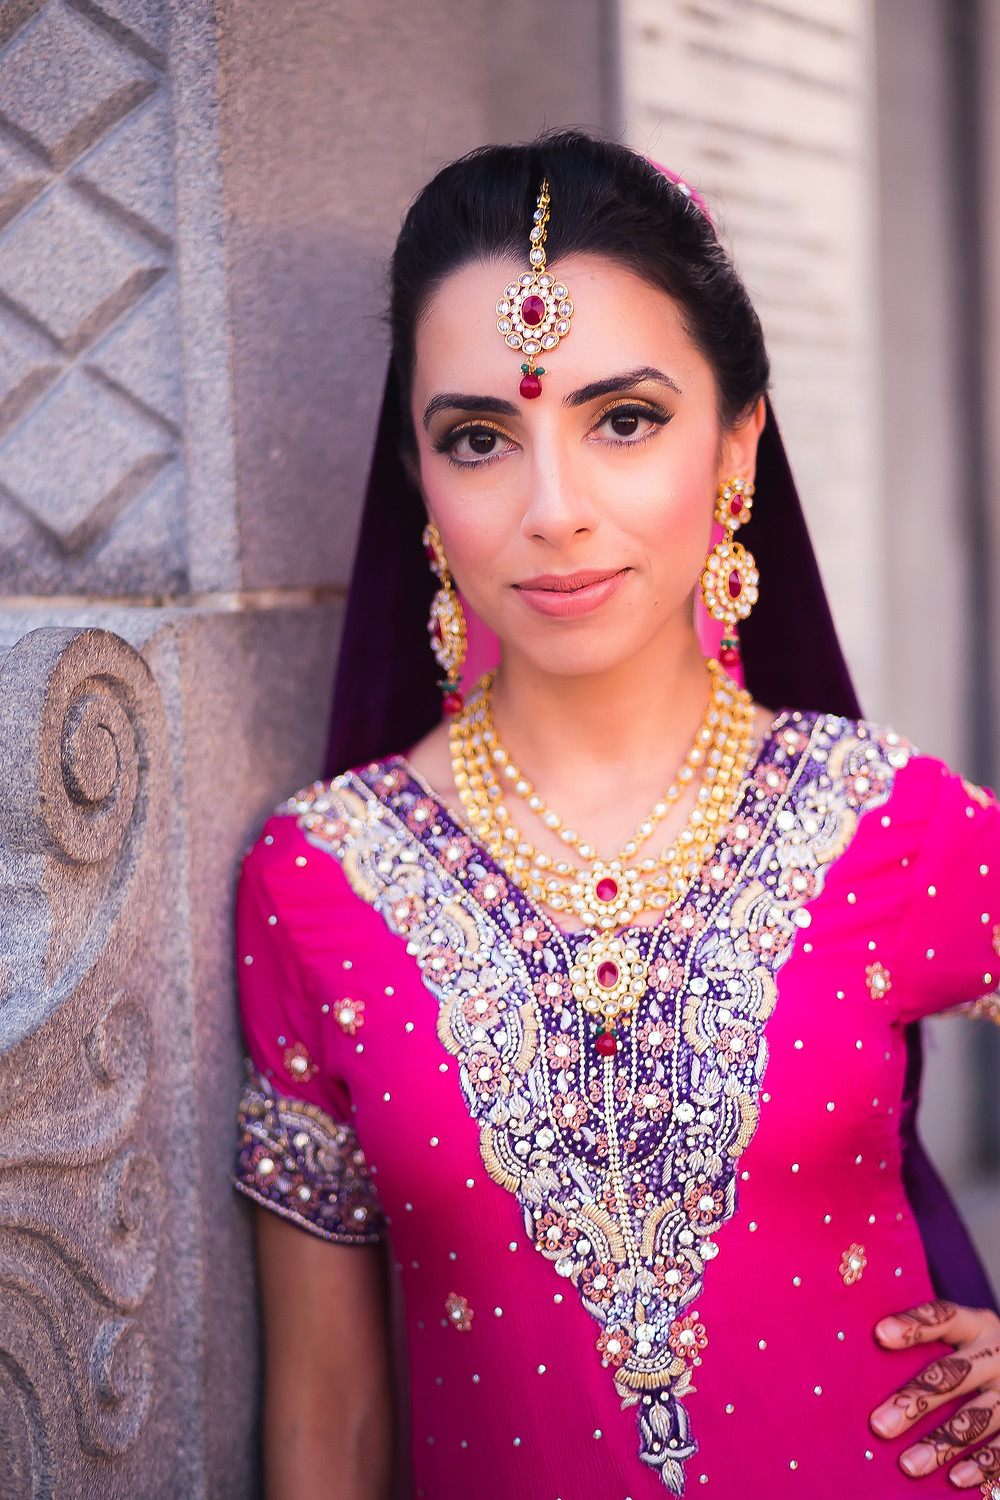 Desi bride makeup